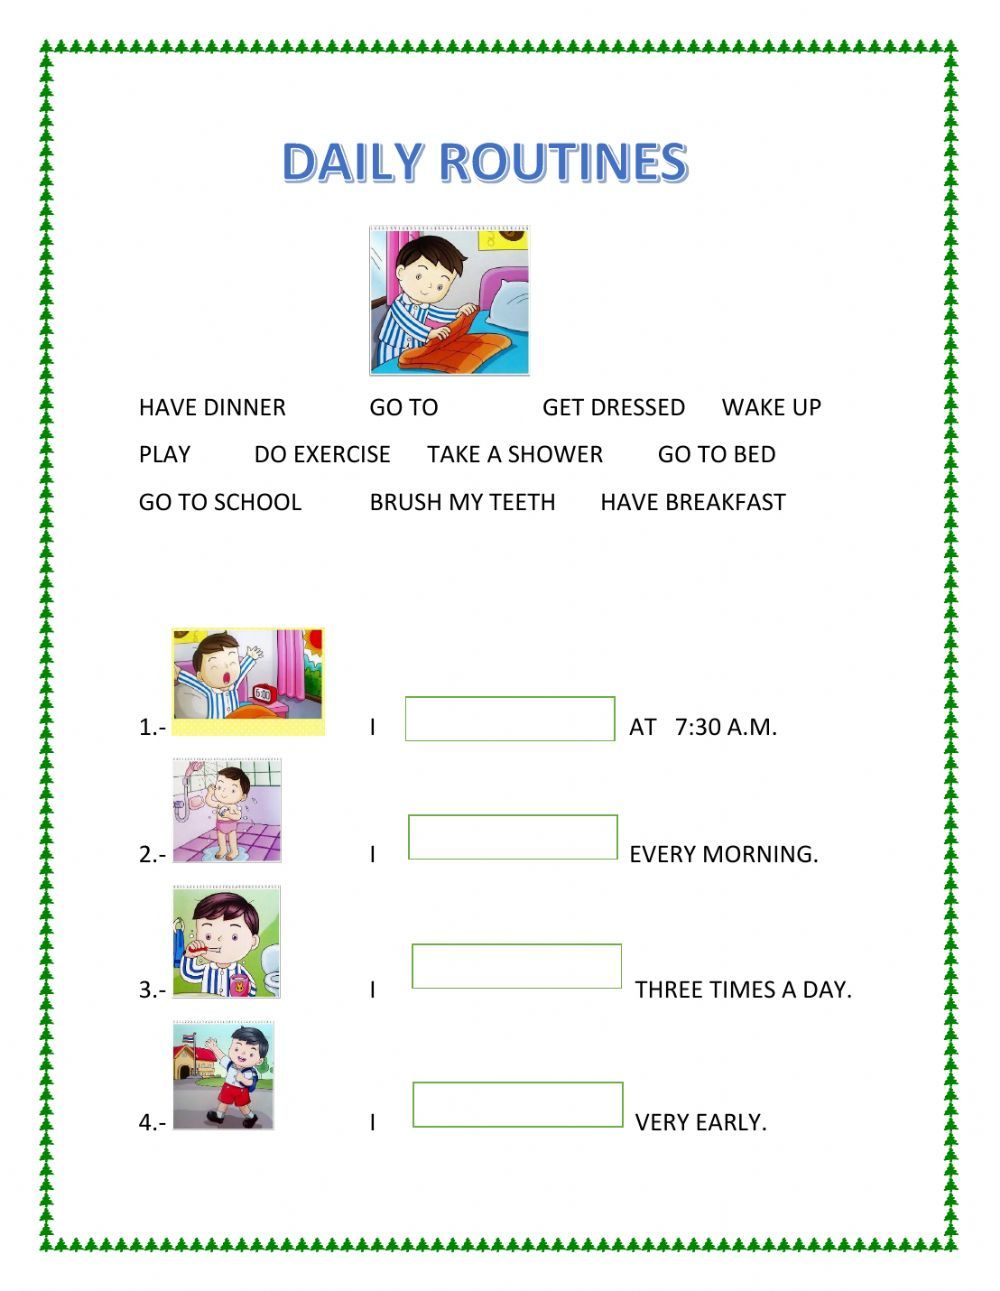 Daily routines interactive and downloadable worksheet